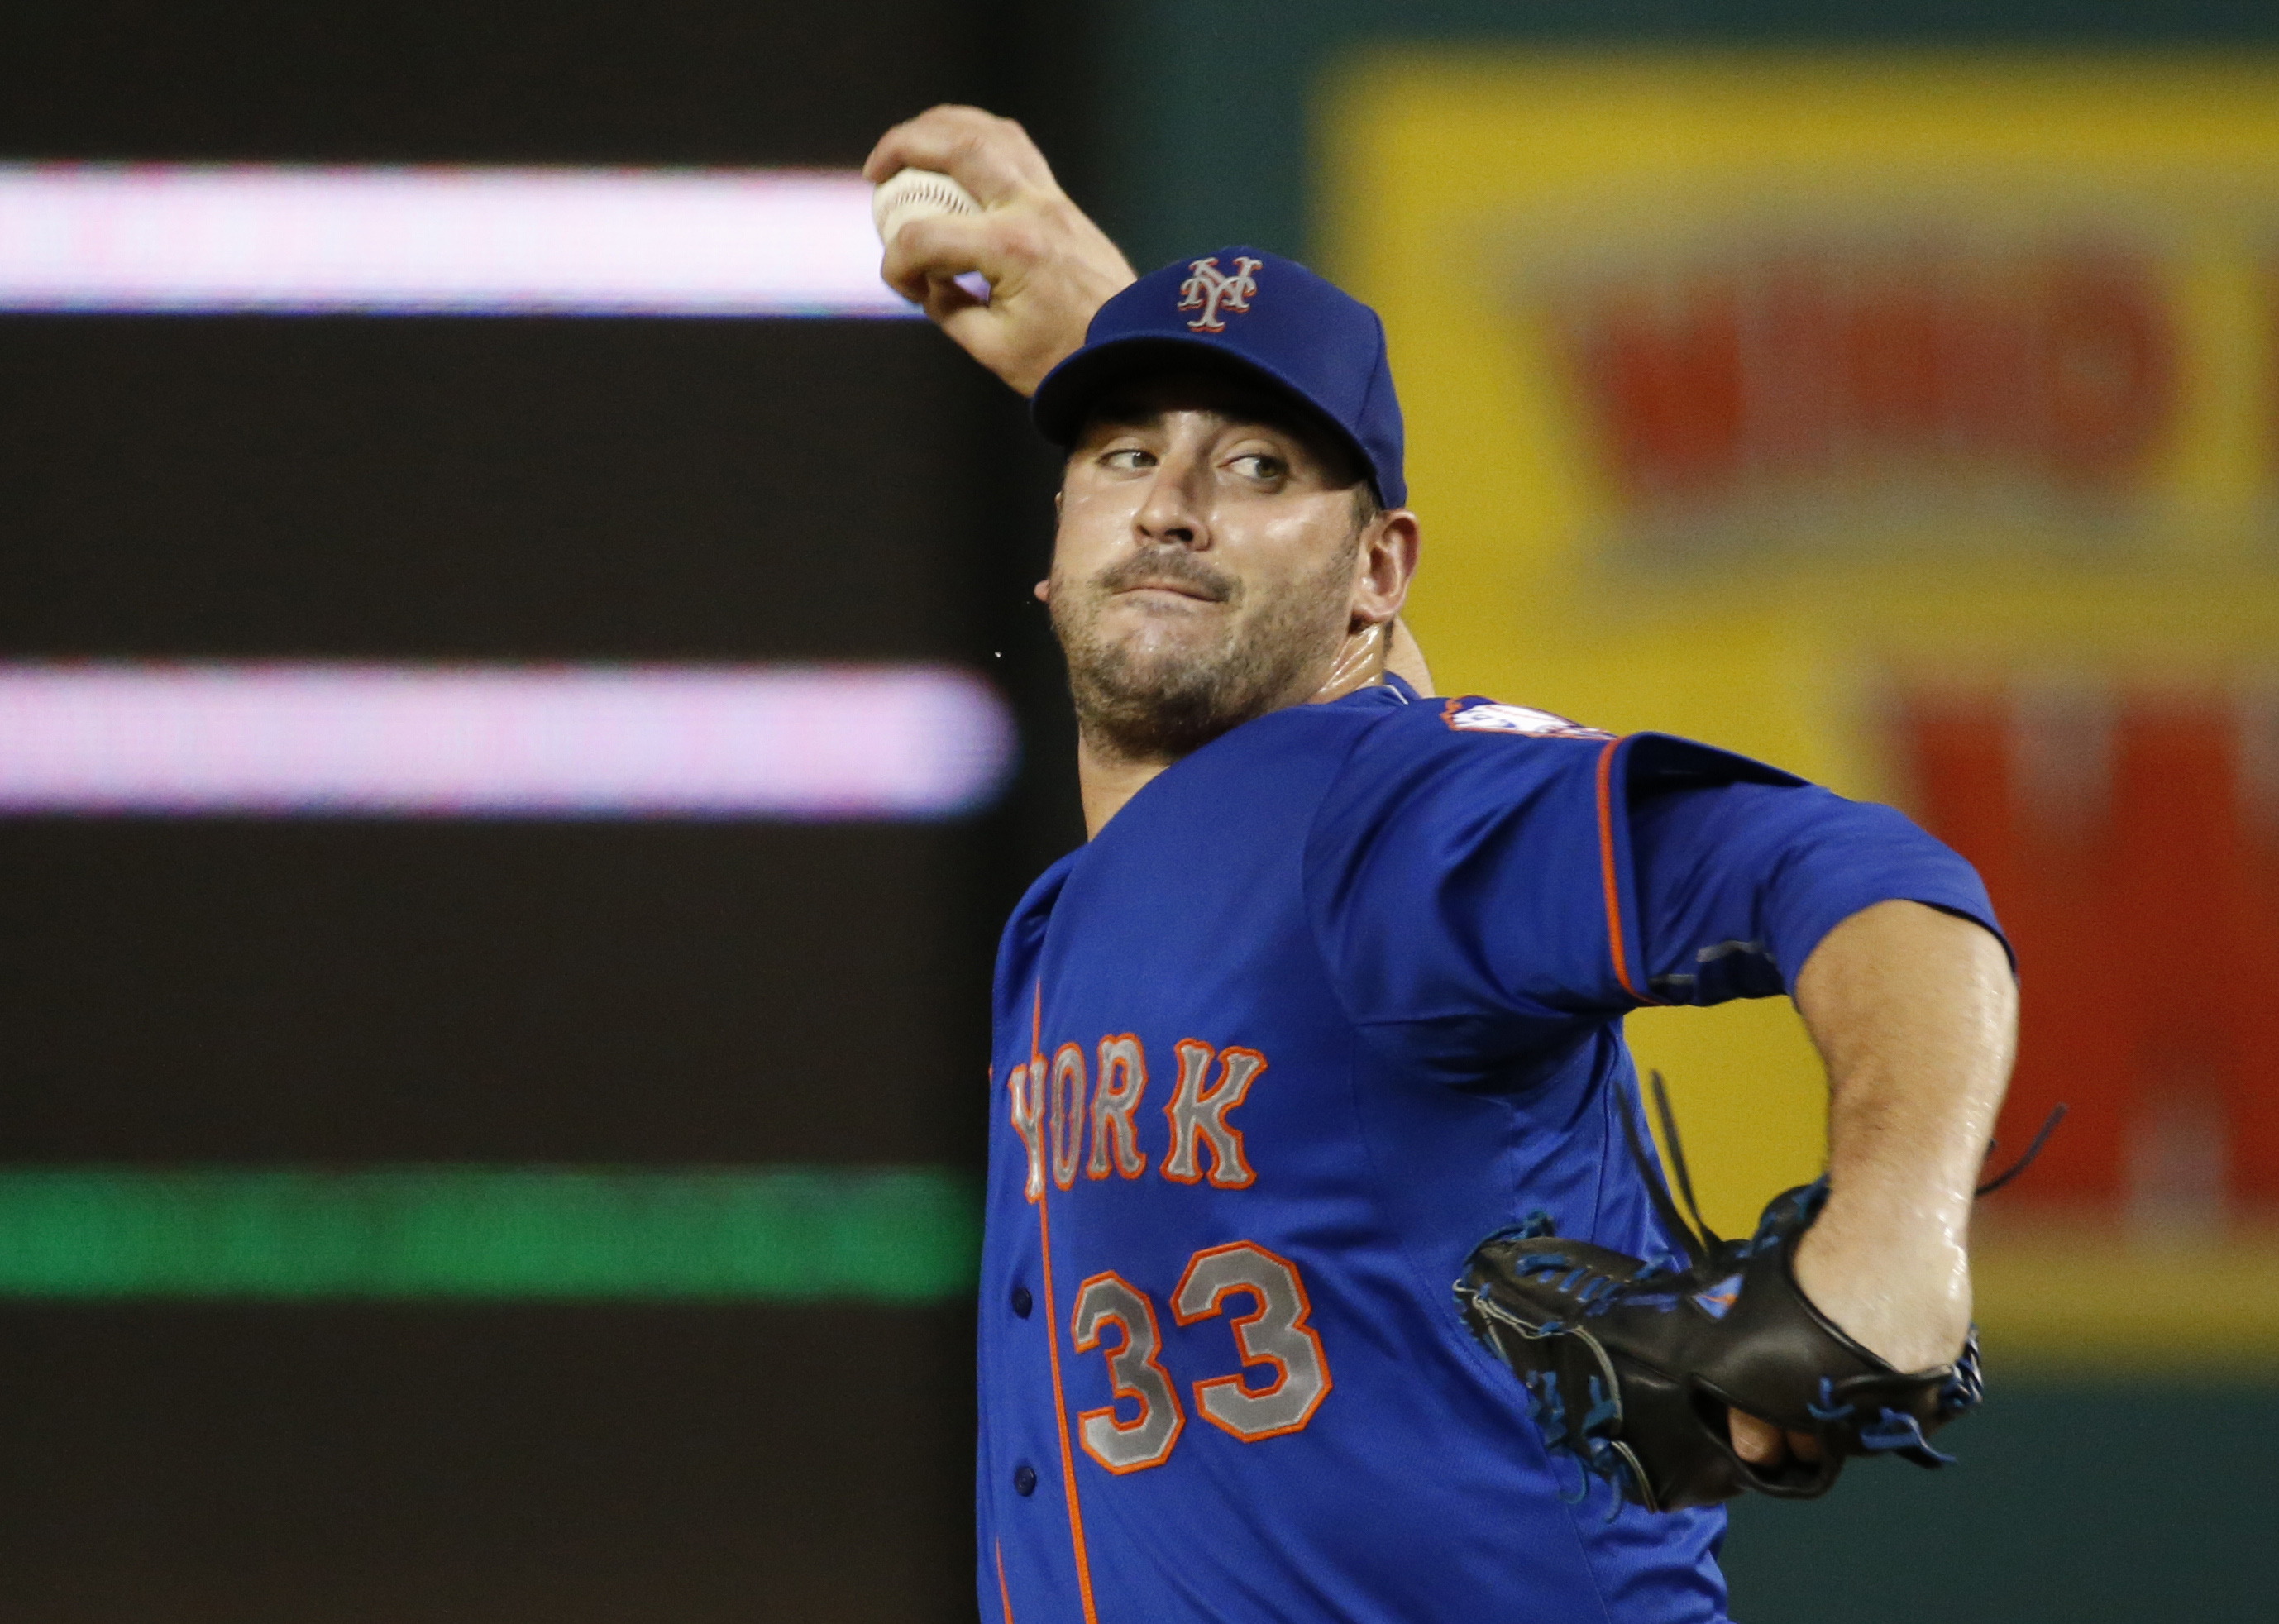 New York Mets starting pitcher Matt Harvey throws during the second inning of a baseball game against the Washington Nationals at Nationals Park, Tuesday, Sept. 8, 2015, in Washington. (AP Photo/Alex Brandon)